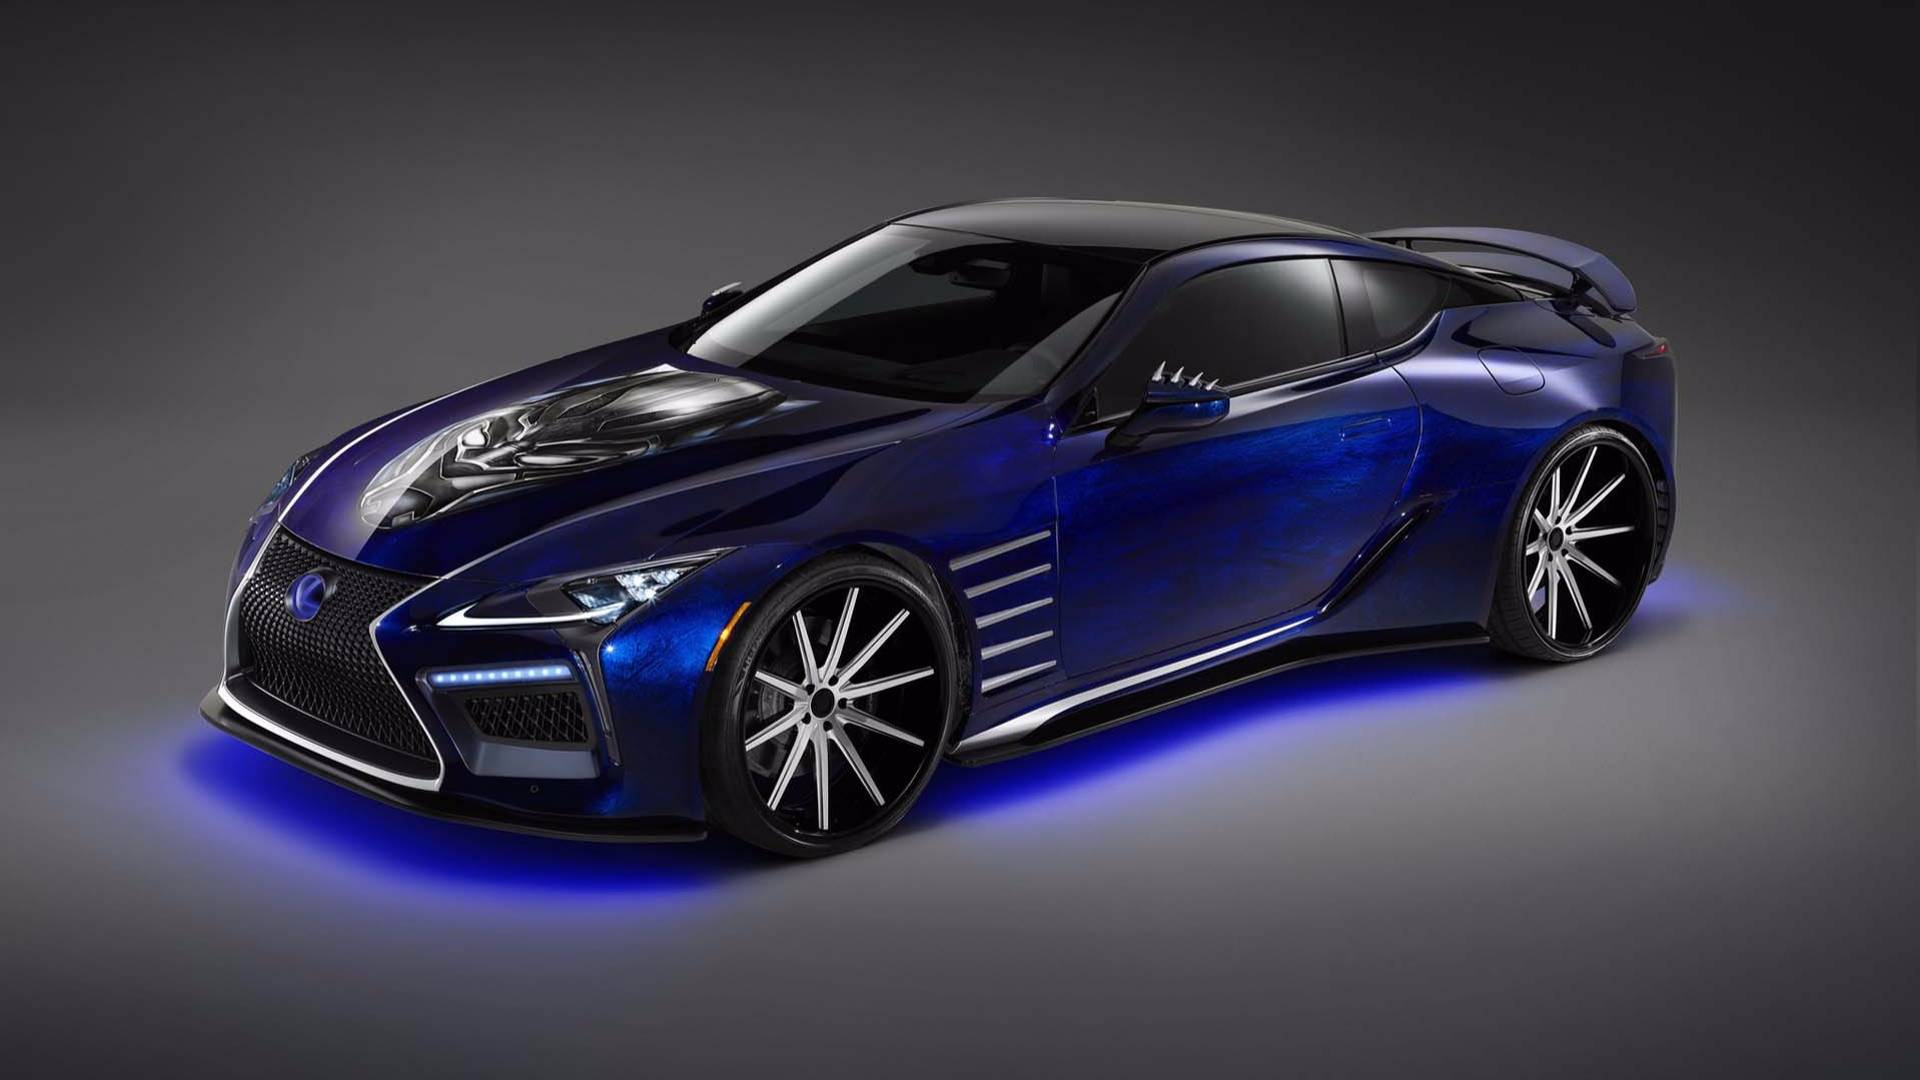 2018 Lexus Lc 500 To Feature In Black Panther Movie